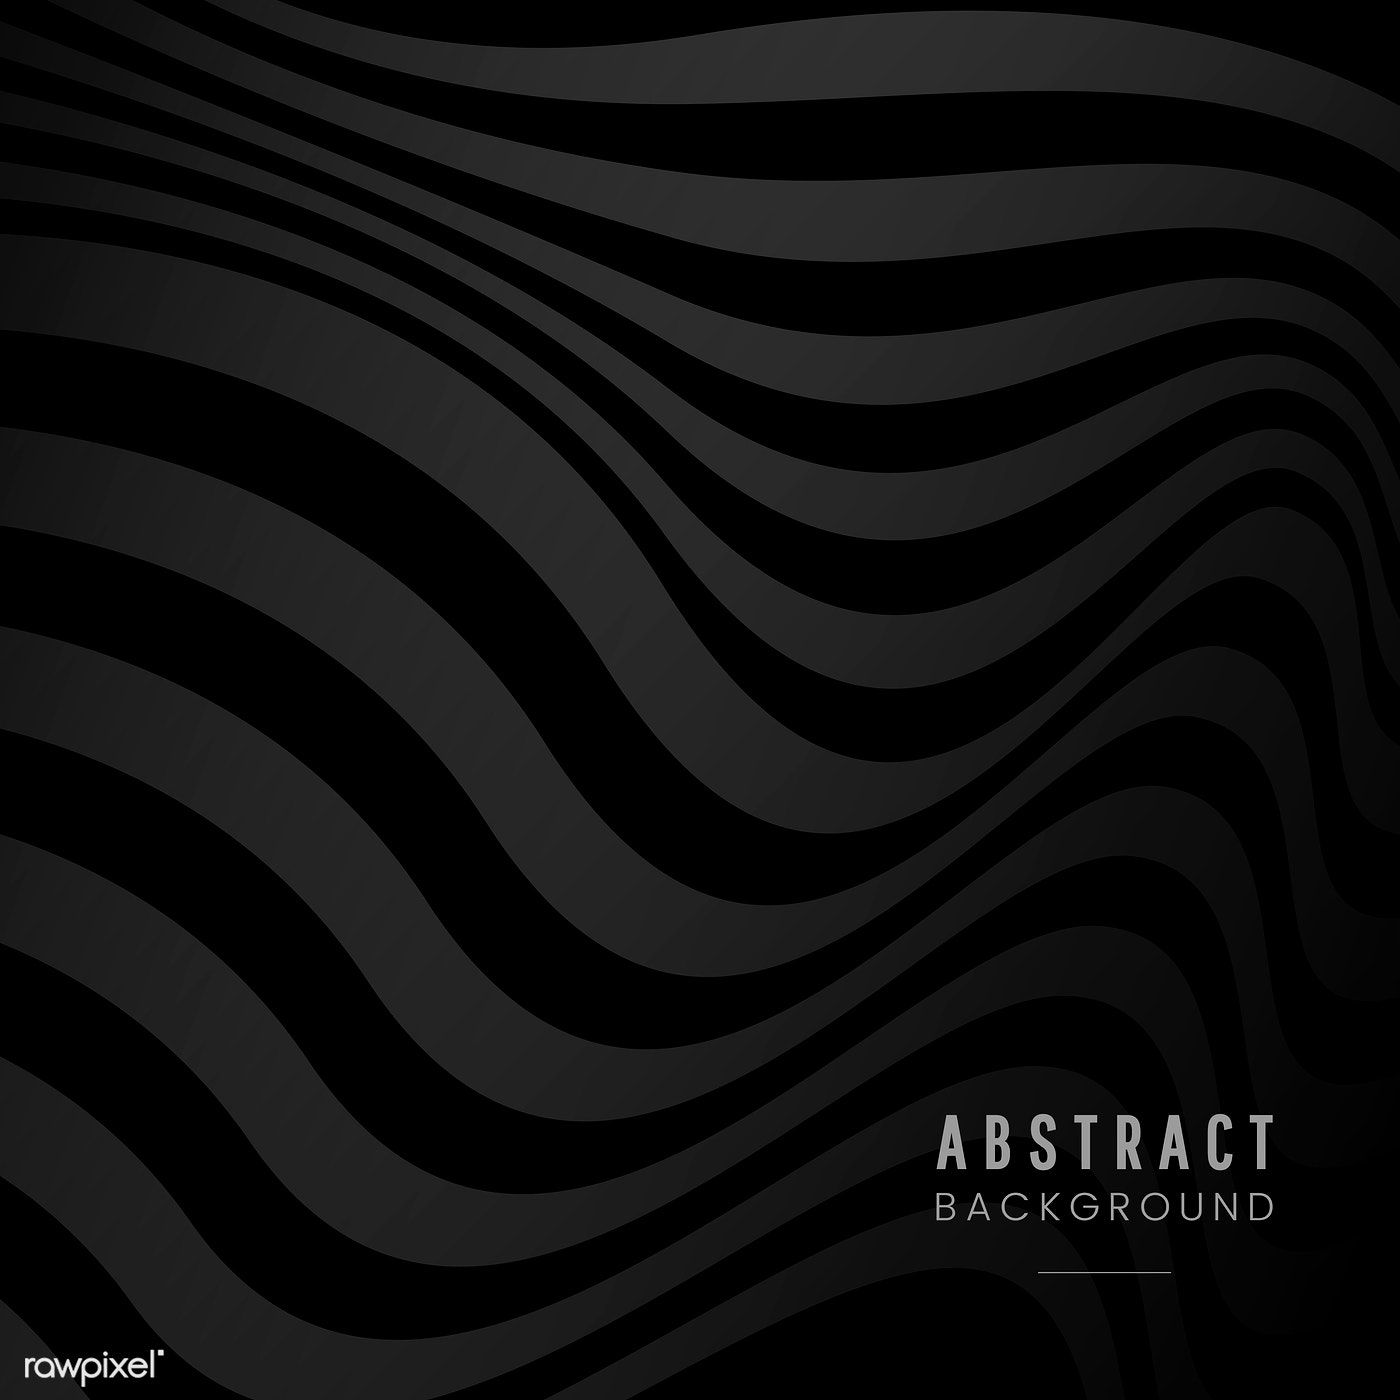 Black Abstract Background Design Vector Free Image By Rawpixel